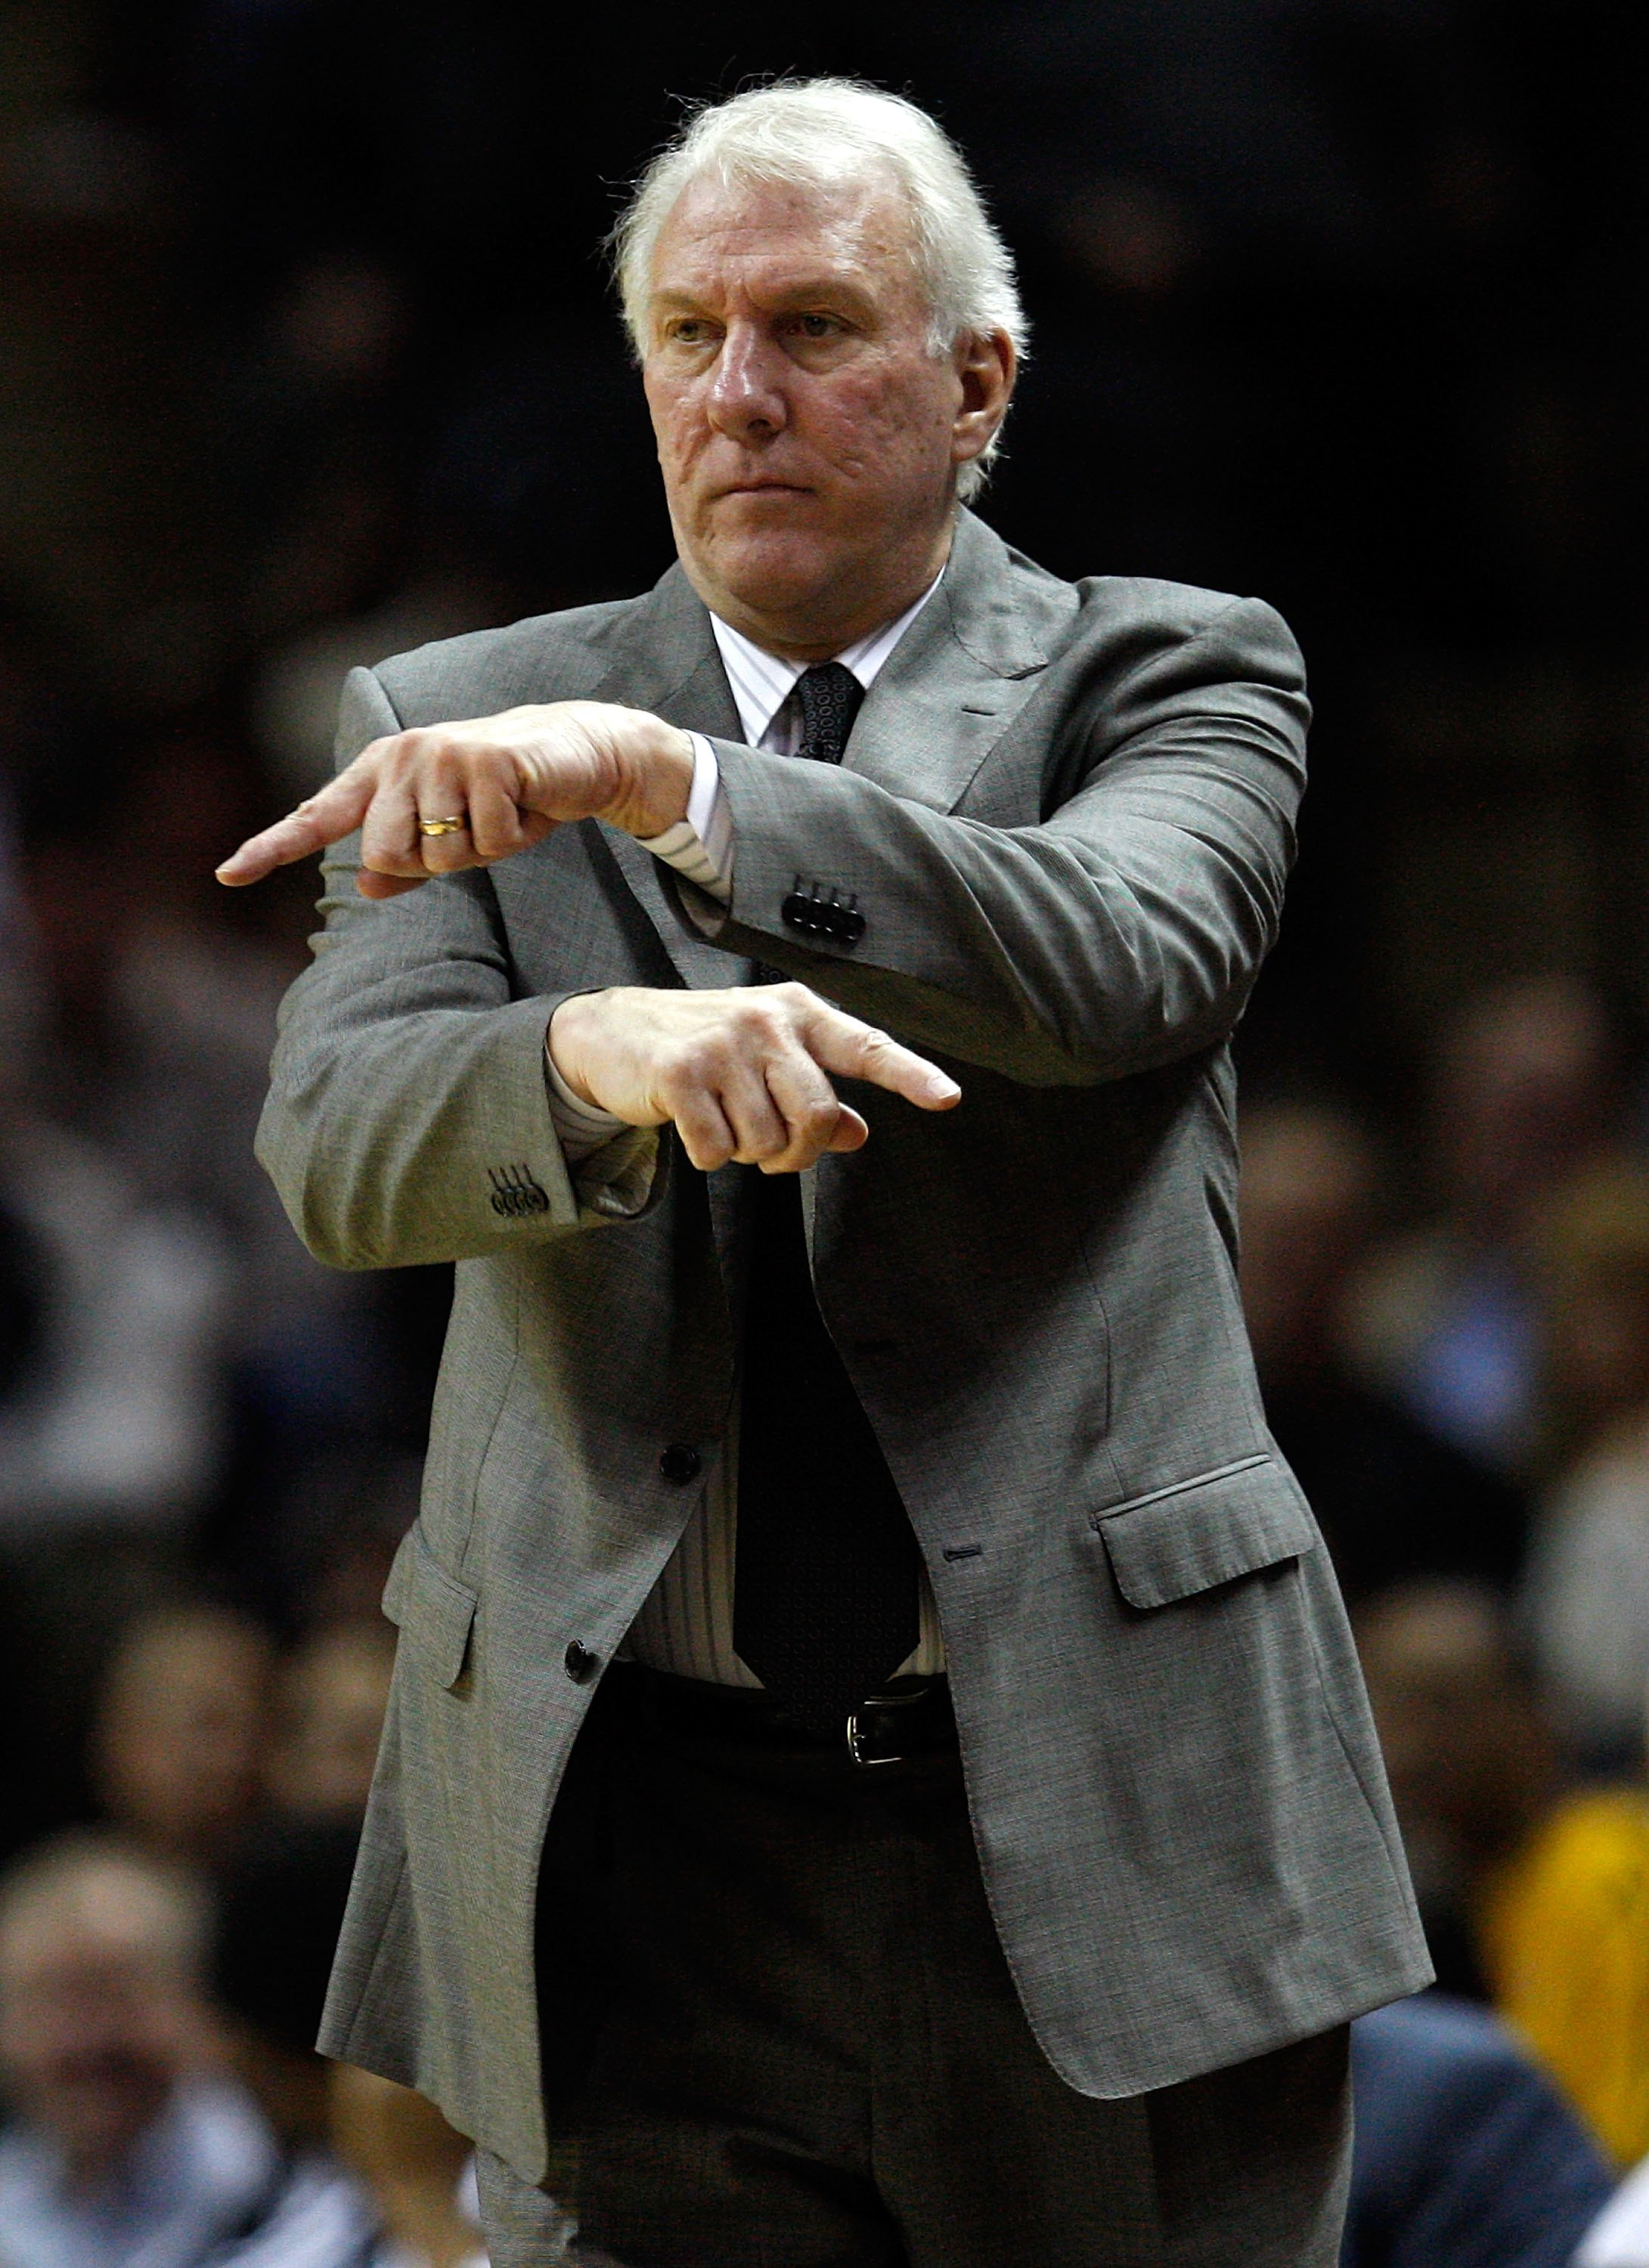 SAN ANTONIO - JANUARY 12:  Head coach Gregg Popovich of the San Antonio Spurs on January 12, 2010 at AT&T Center in San Antonio, Texas.  NOTE TO USER: User expressly acknowledges and agrees that, by downloading and/or using this Photograph, user is consen